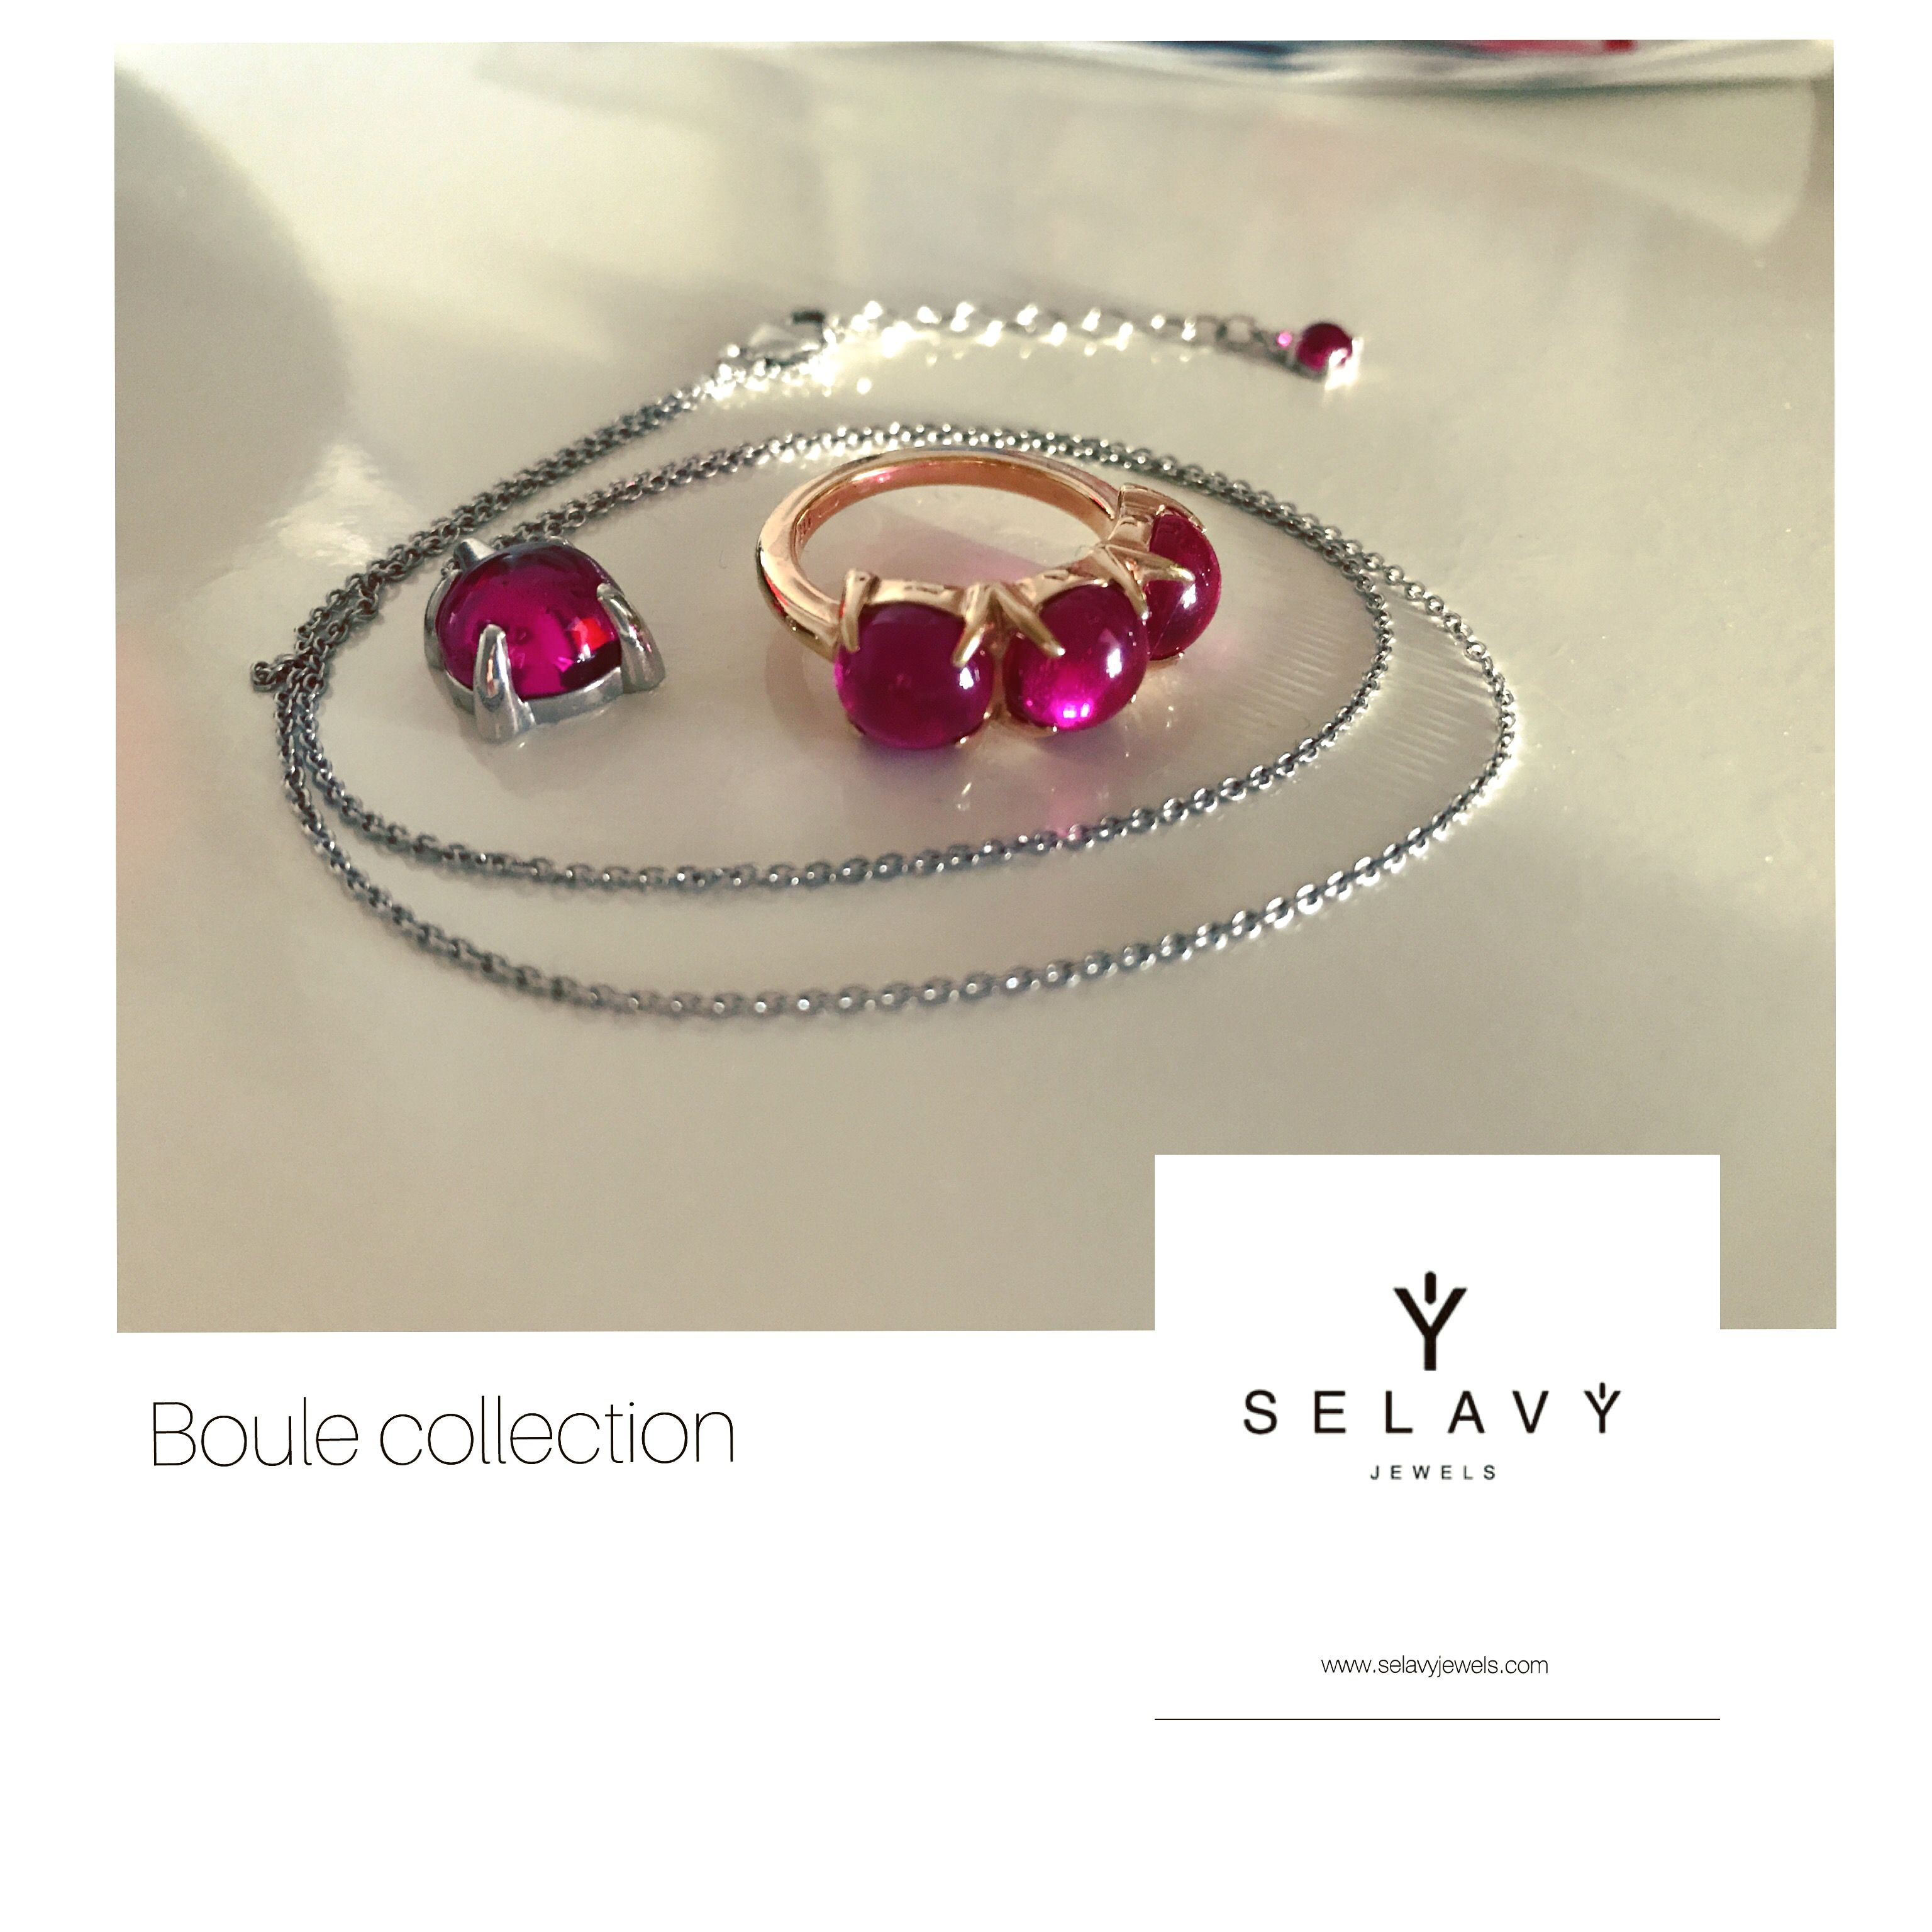 SELAVY' JEWELS Boule Collection. www.selavyjewels.com